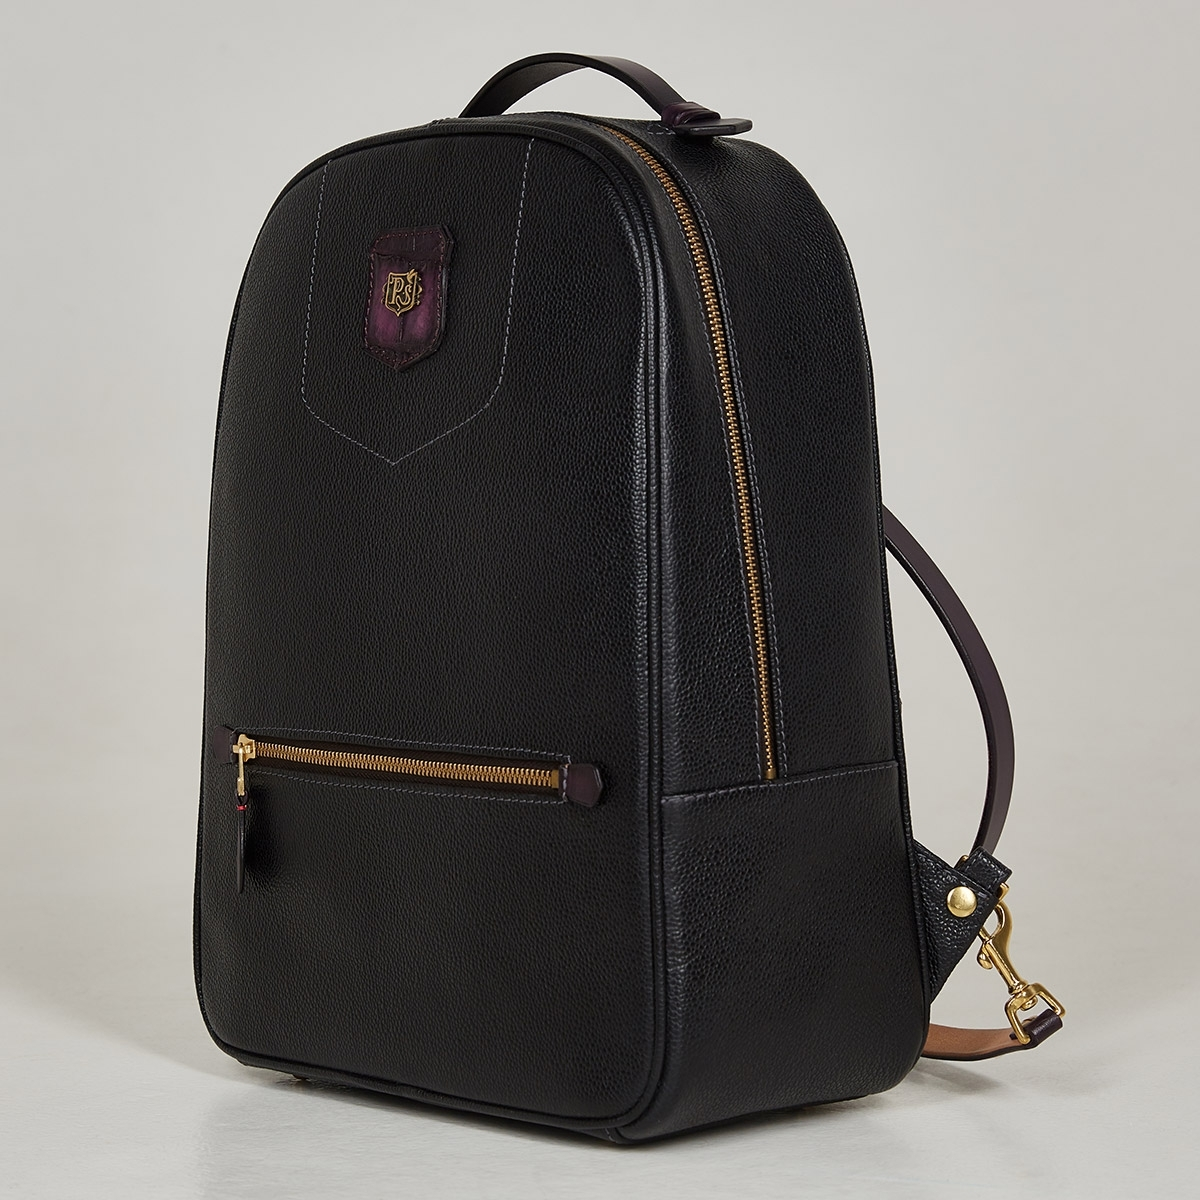 City backpack ASPEN plum wine & grain dark blue